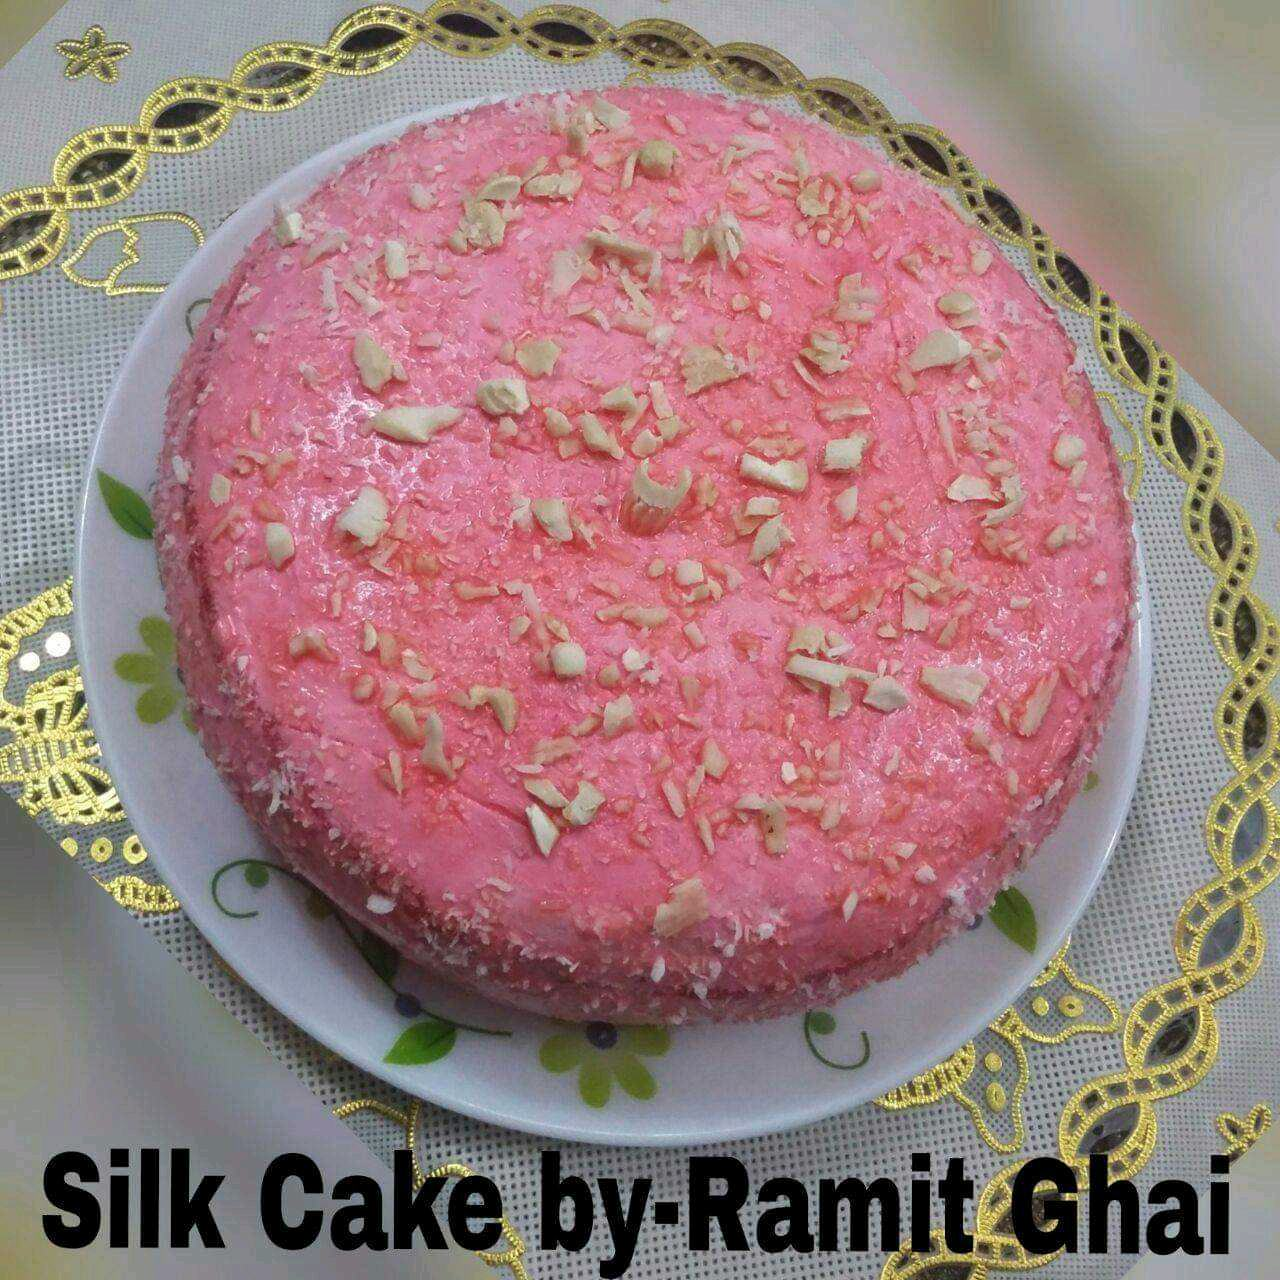 SilkCake .....About SilkCake ( silk chocolate used)  It's a cake with a good source of dessert for vegetarians